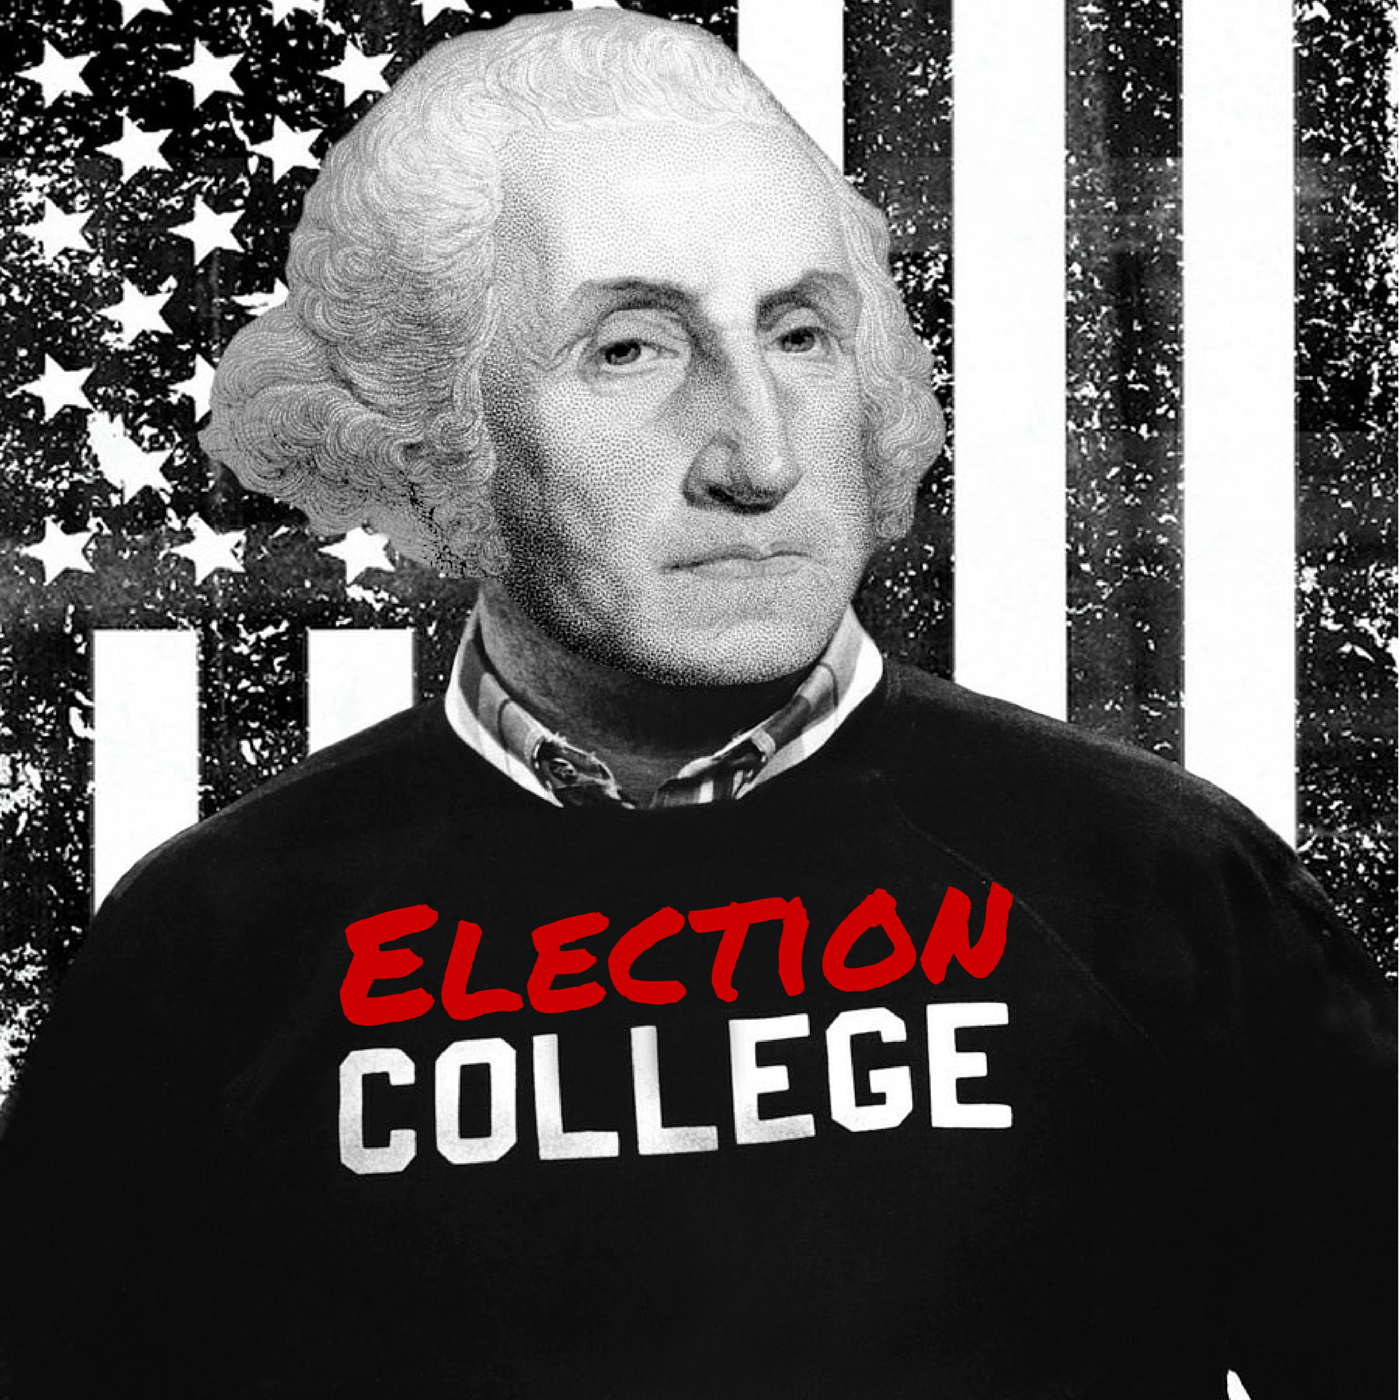 Frederick Douglass - Part 2 | Episode #168 | Election College: United States Presidential Election History